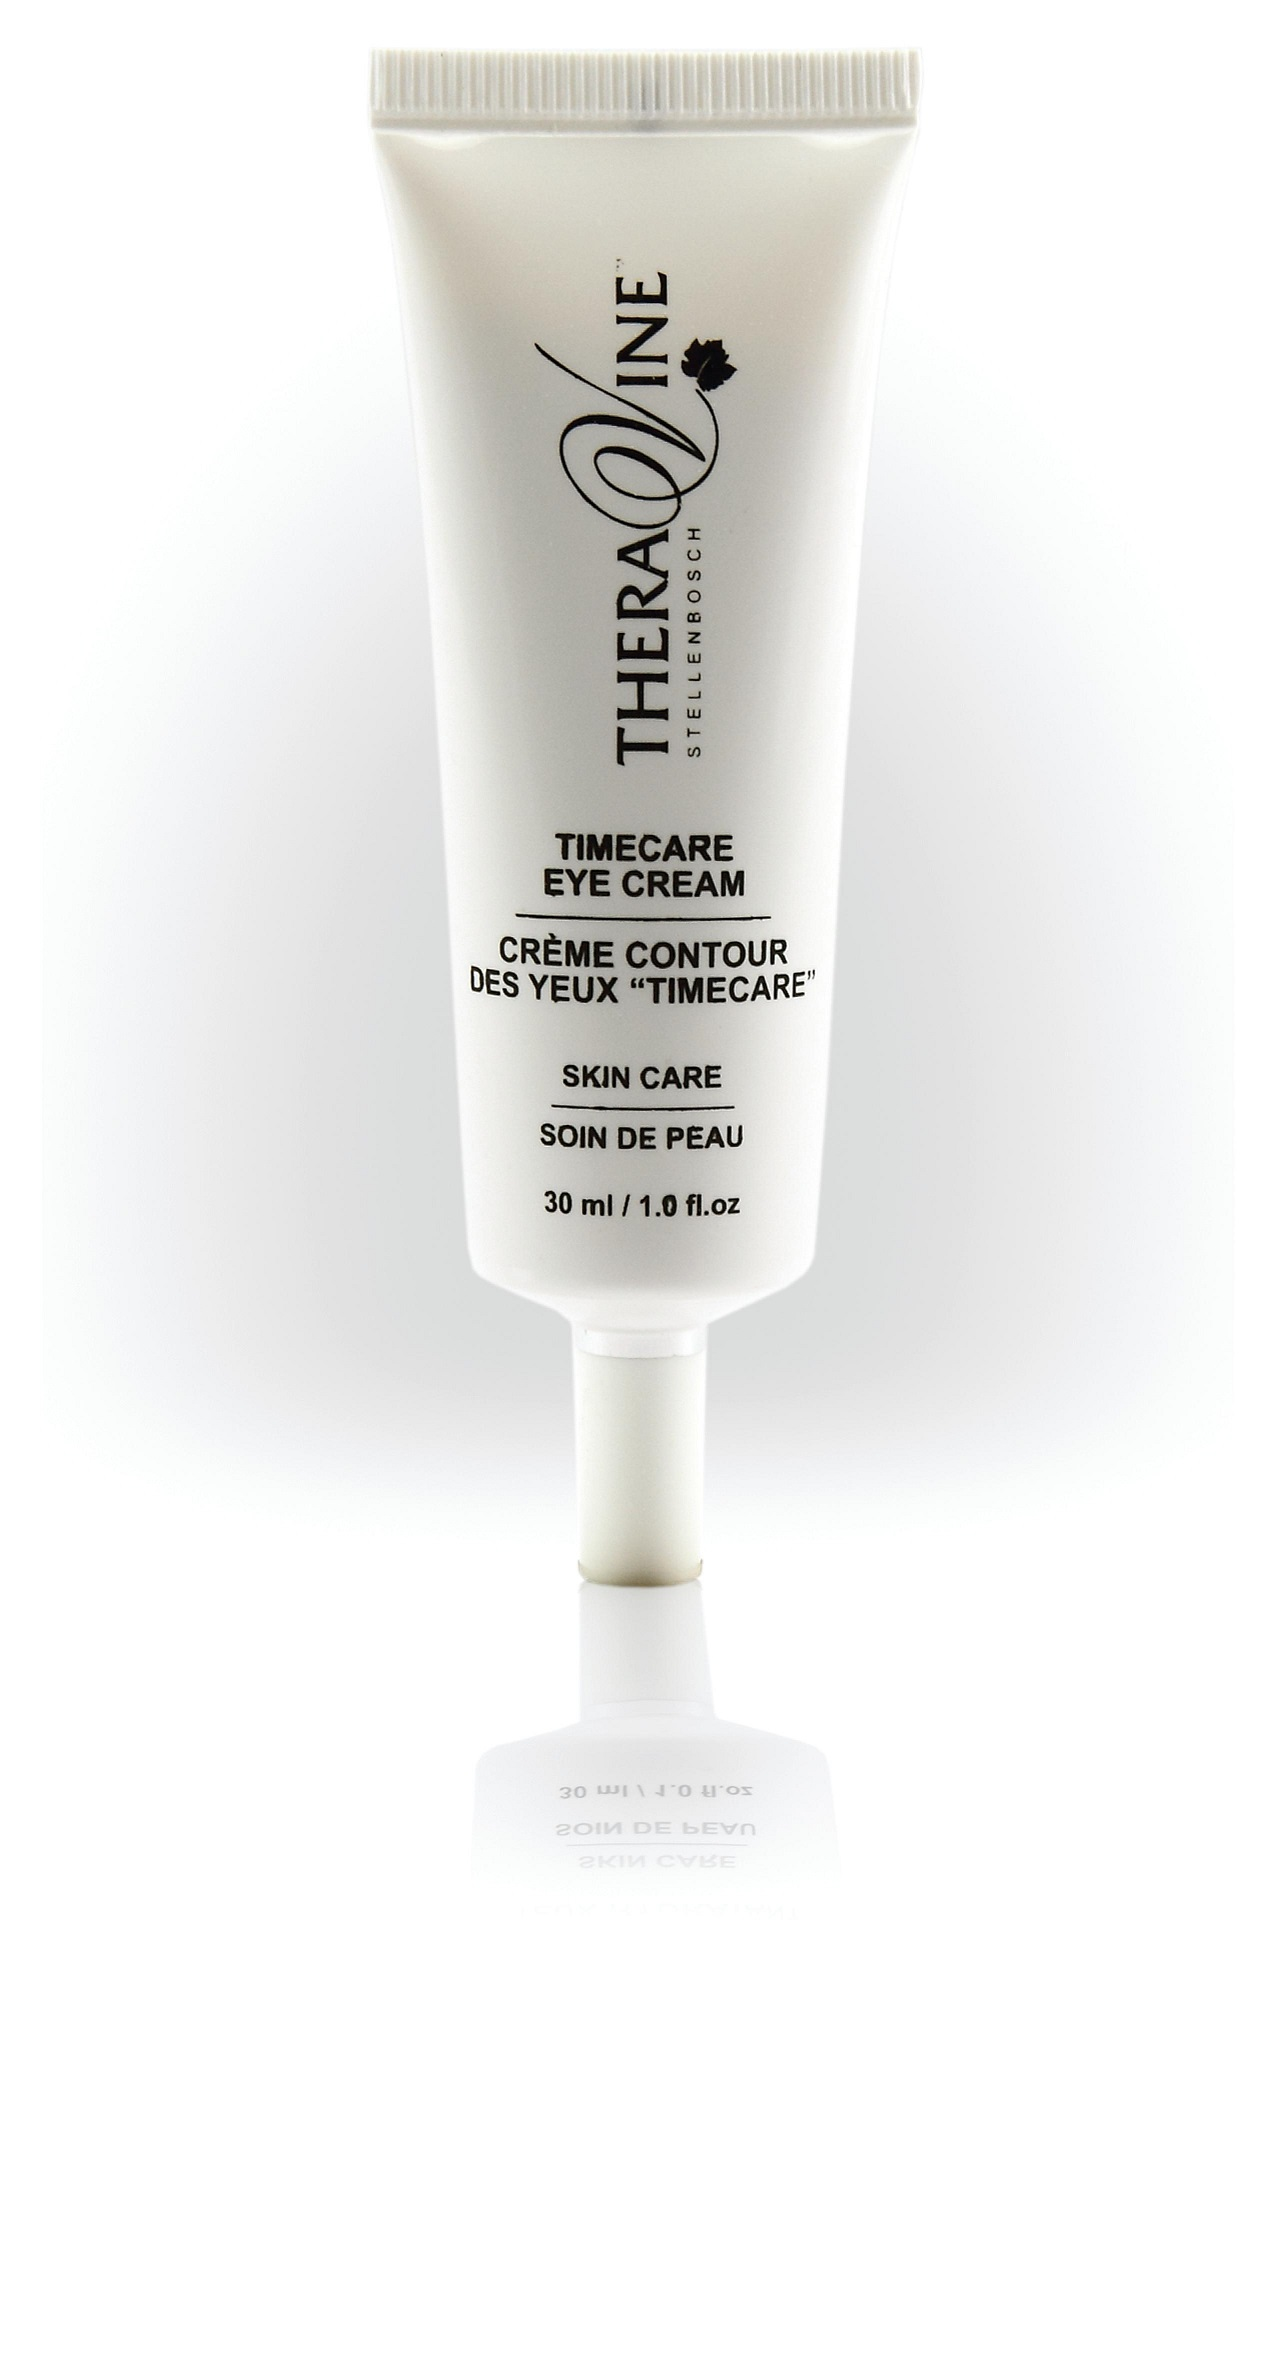 Timecare Eye Cream